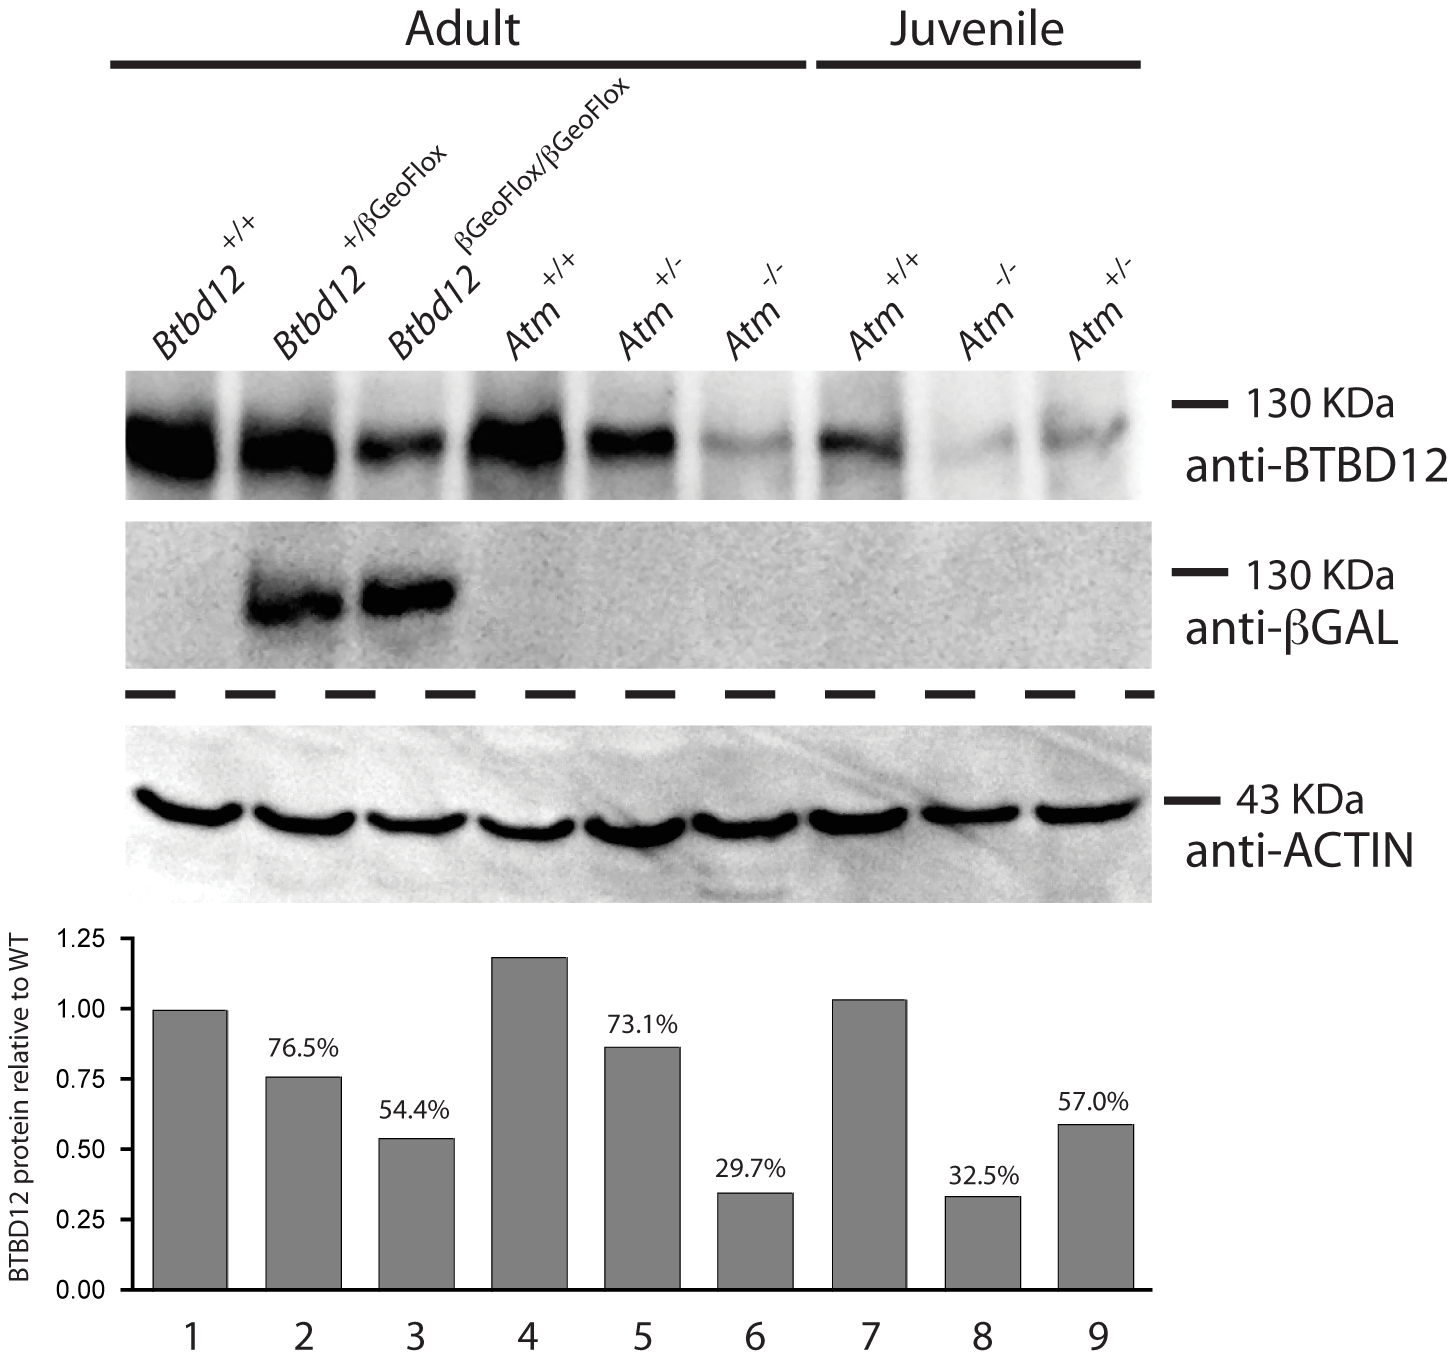 BTBD12 protein is down regulated in the <i>Btbd12<sup>βGeoFlox/βGeoFlox</sup></i> mutant and the <i>Atm</i> null mice.